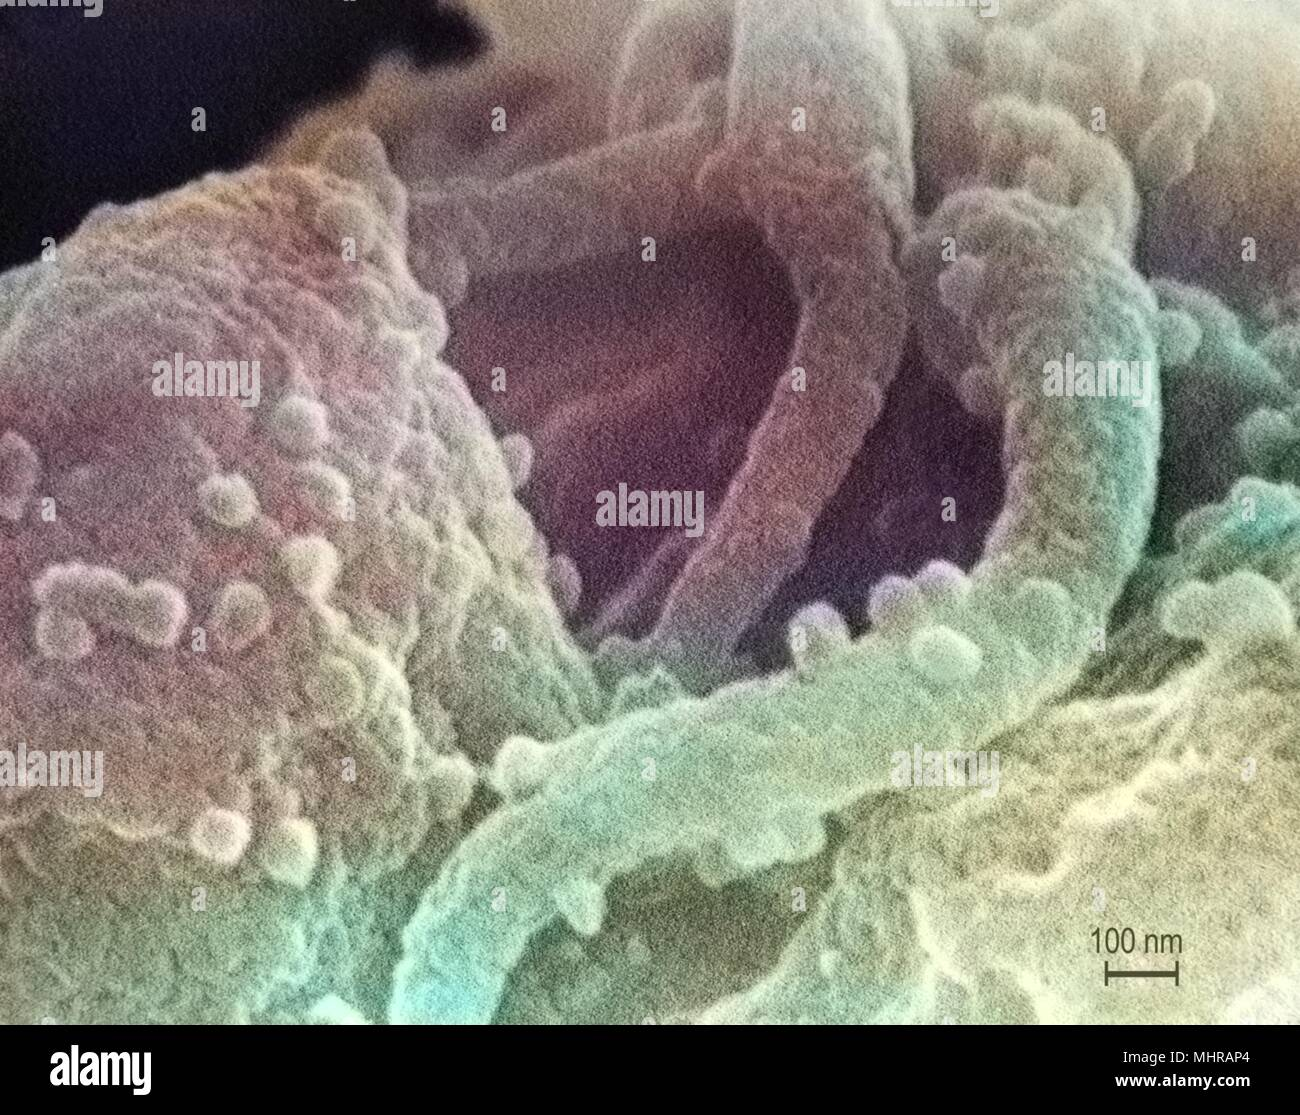 Presence of the human immunodeficiency virus (HIV-1) in a tissue sample, revealed in the highly magnified scanning electron microscopic (SEM) image, 1989. Image courtesy Centers for Disease Control (CDC) / C. Goldsmith, P. Feorino, E. L. Palmer, W. R. McManus. Note: Image has been digitally colorized using a modern process. Colors may not be scientifically accurate. () - Stock Image